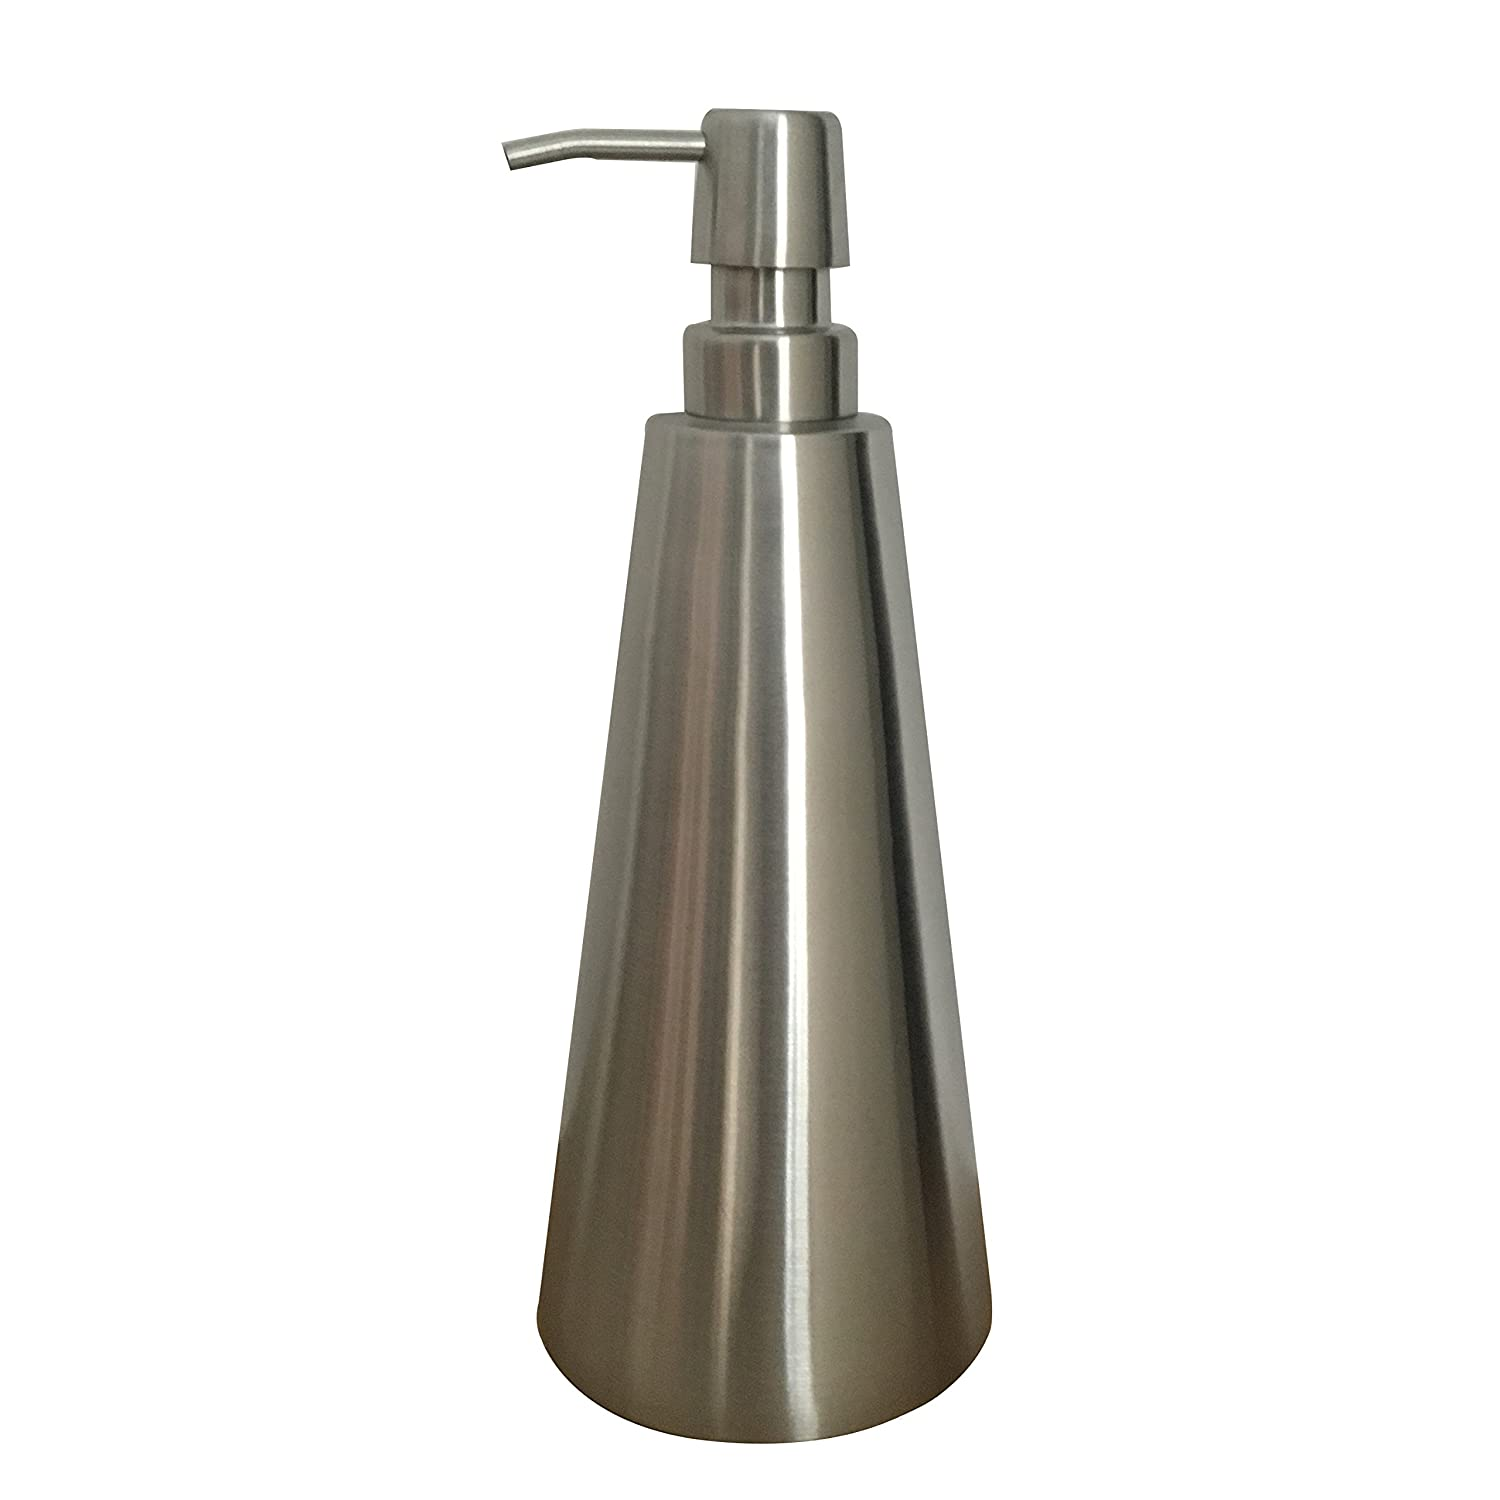 Stainless Steel Pump Dispenser Soap Lotion Bottle Bathroom Container Marketplace Hotel Restaurant, Brushed (27.3 oz / 800ml) Farnavi